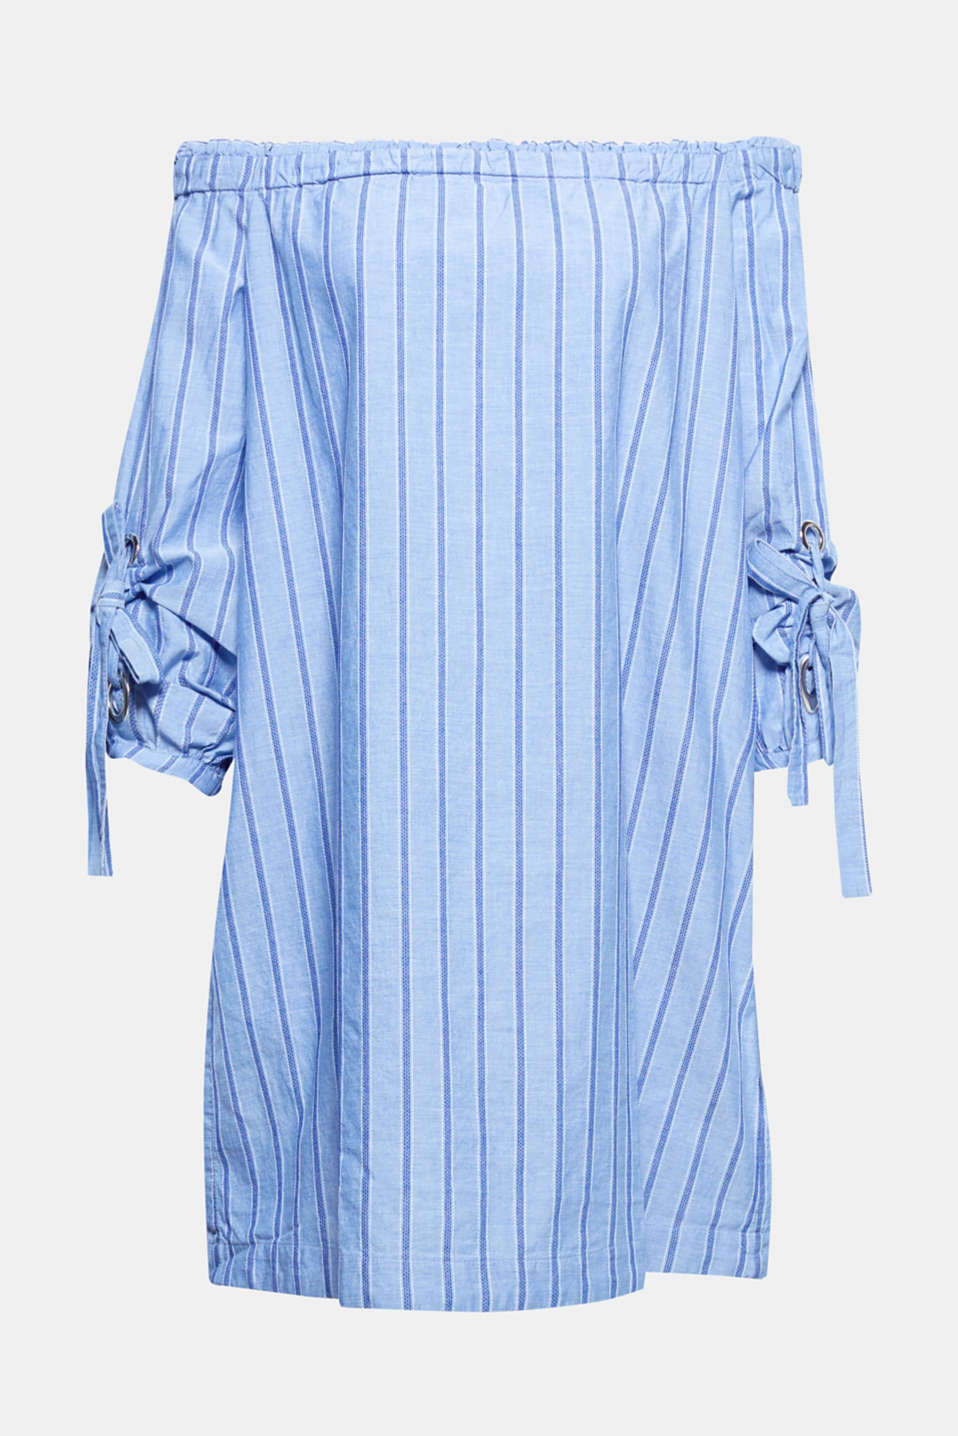 This casual, off-the-shoulder dress made of gently processed, high-quality organic cotton with vertical stripes and bow sleeves perfectly accentuates beautiful shoulders!